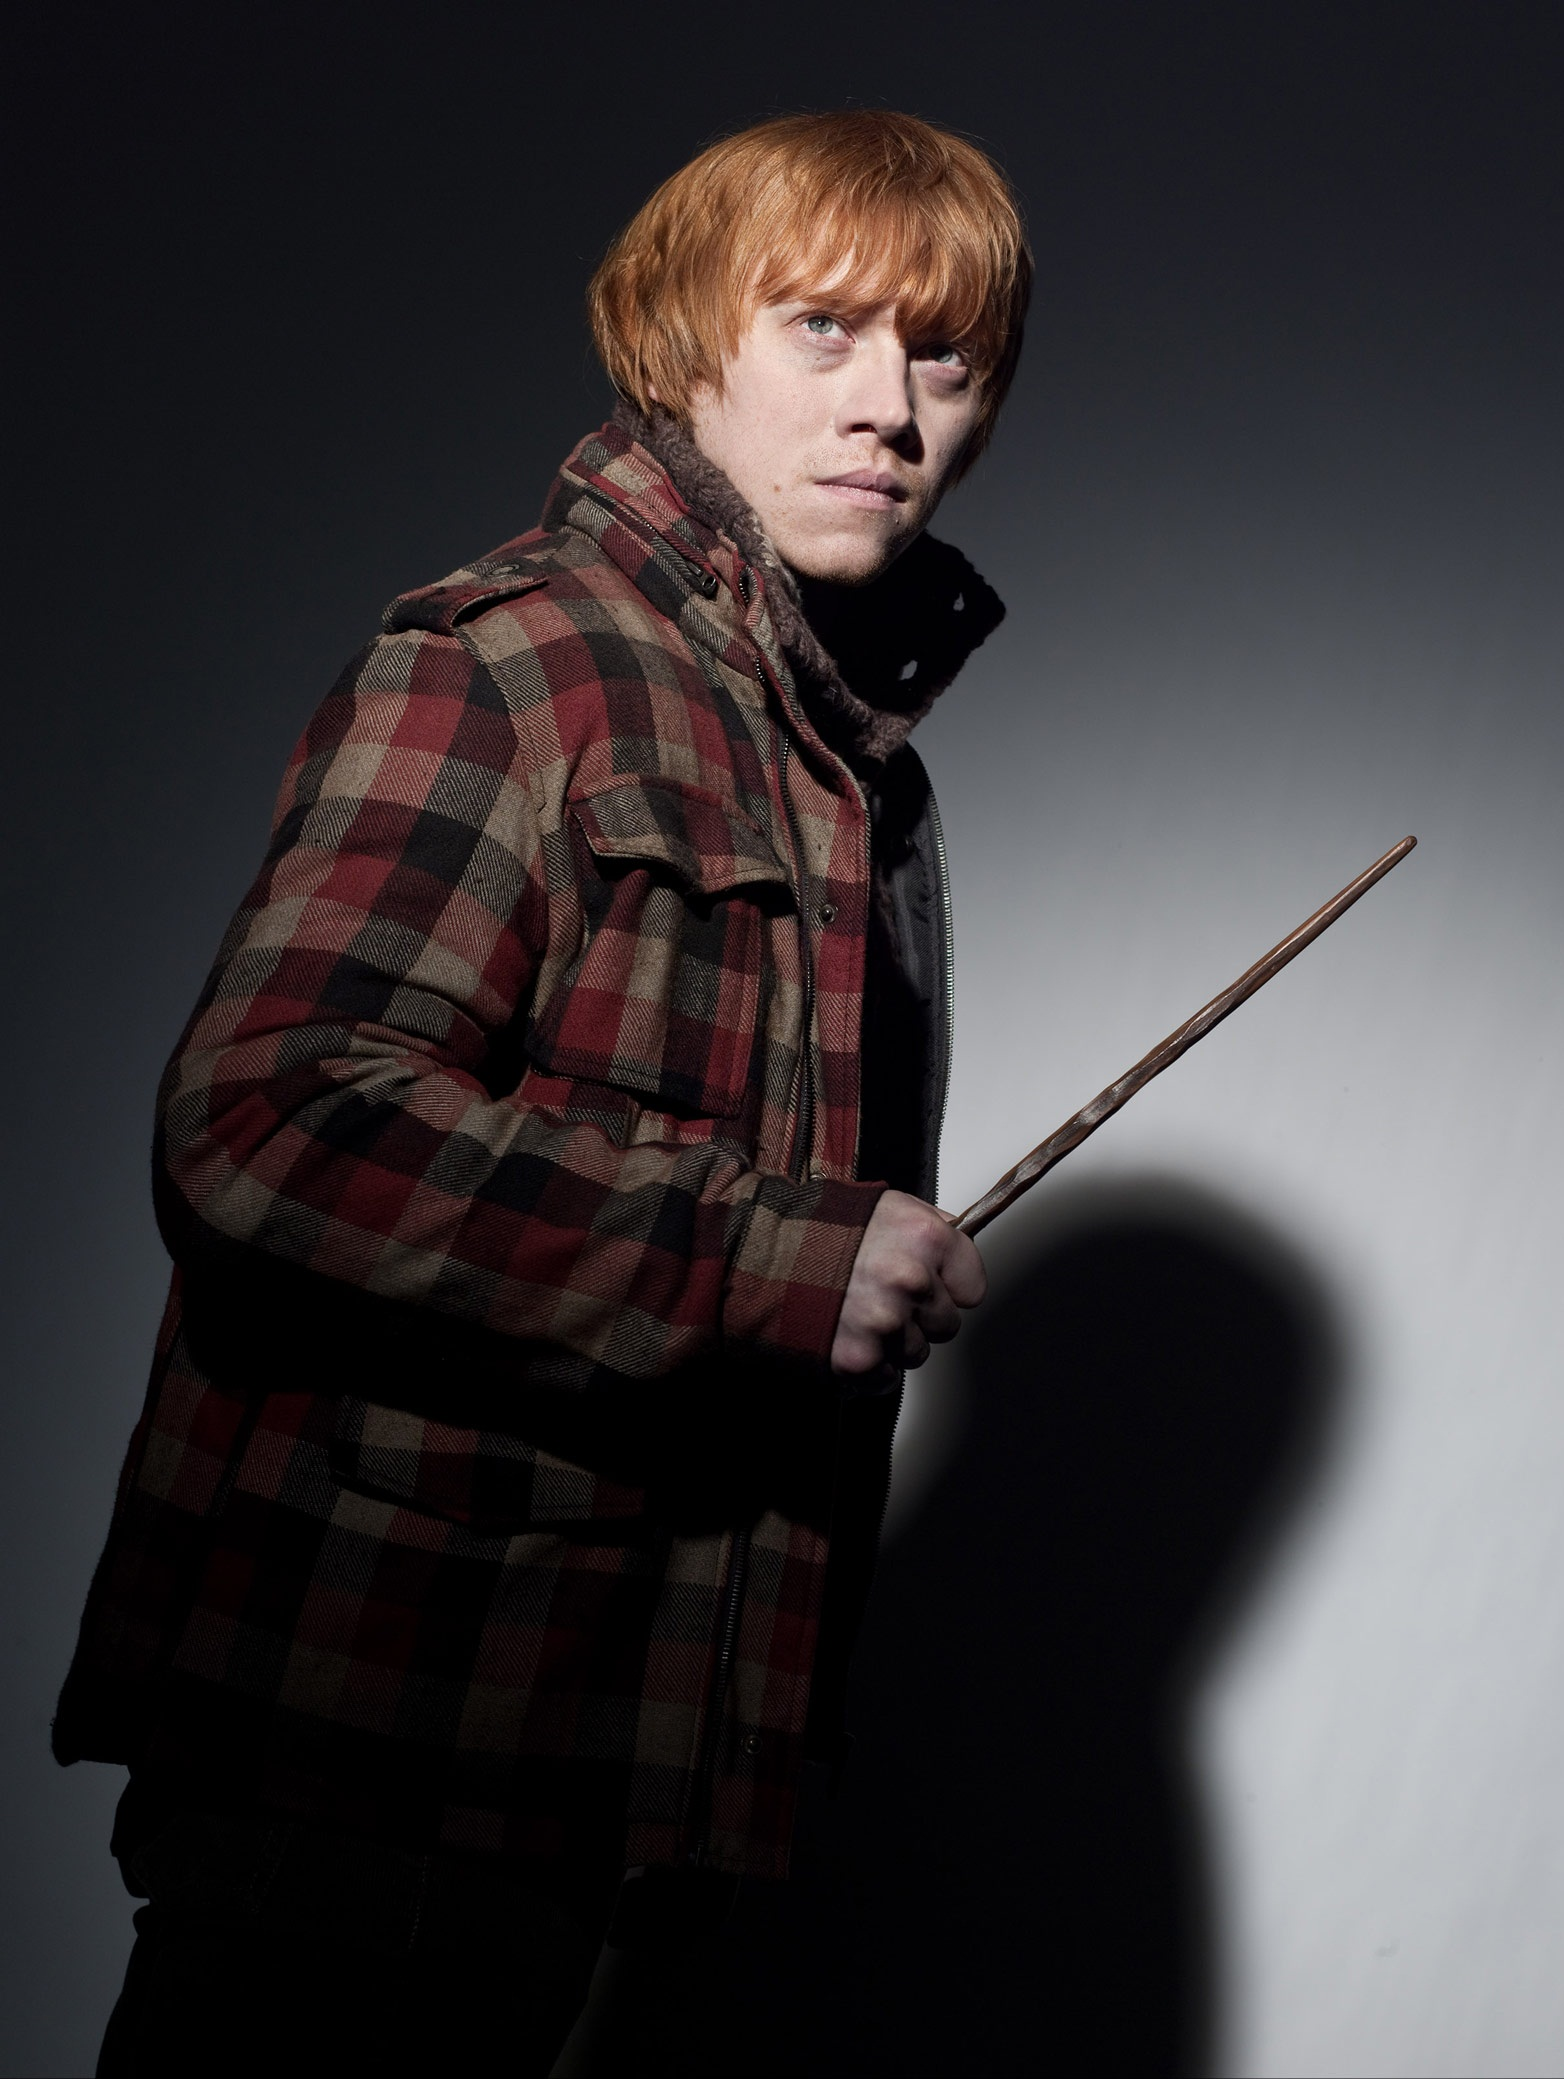 Ron weasley prince 39 s world harry potter fanon wiki for Harry potter and the deathly hallows wand